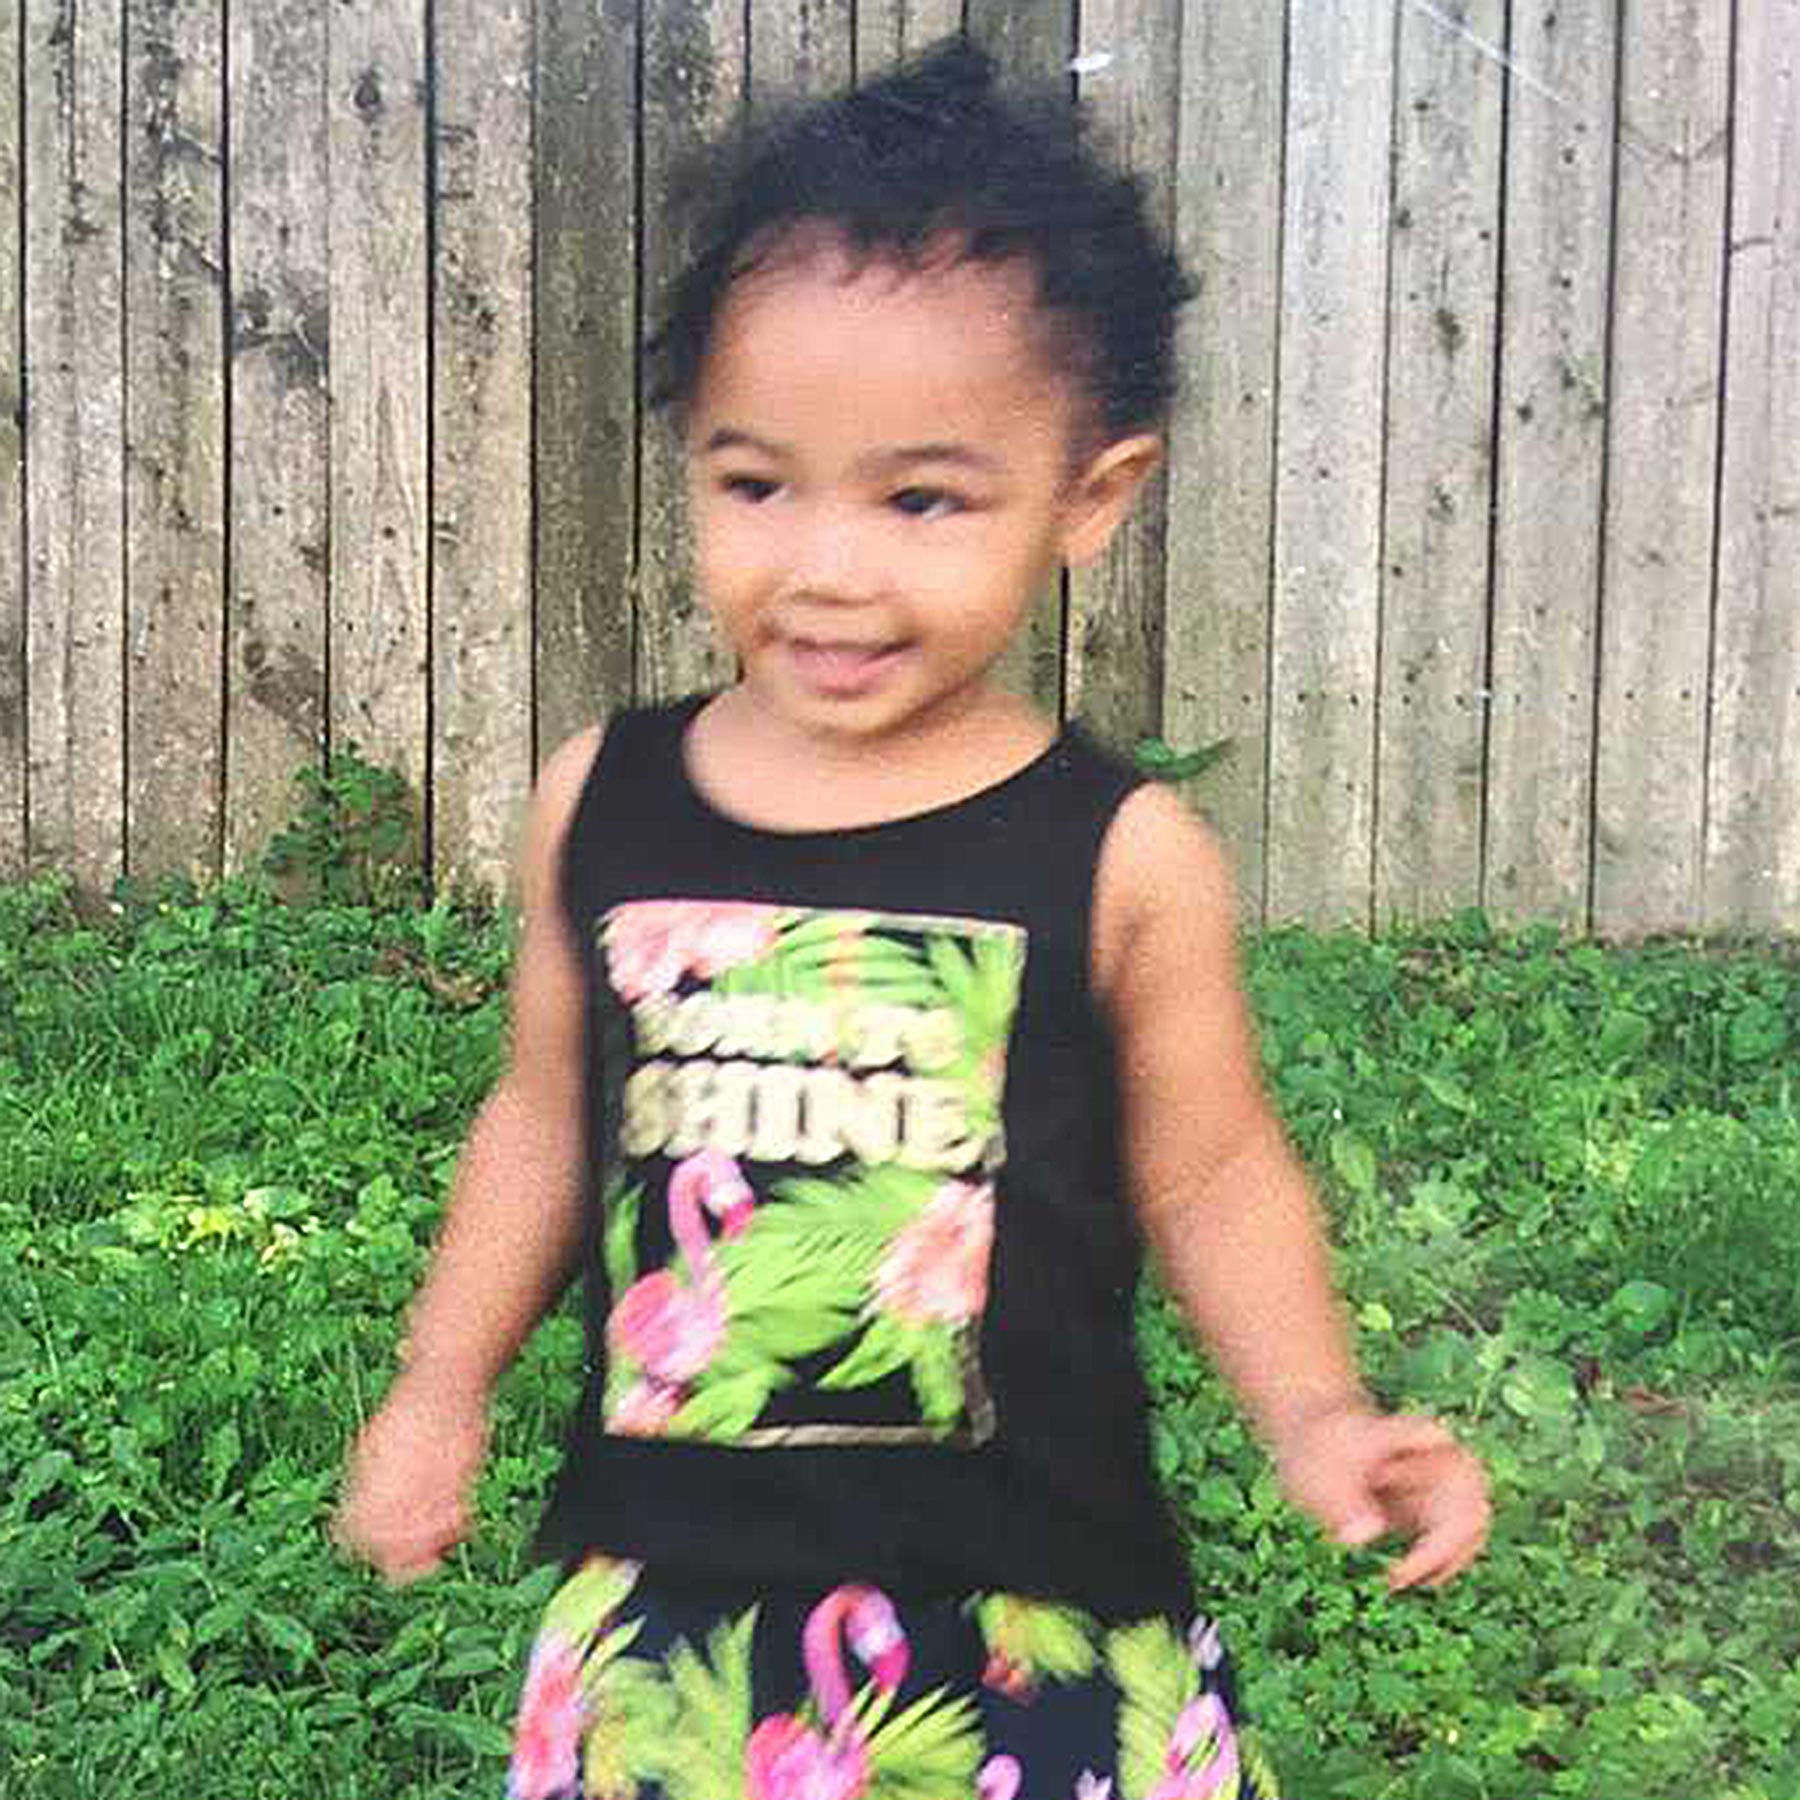 Uber Driver Is Charged with Kidnapping Missing Pennsylvania Toddler, Sparking Amber Alert